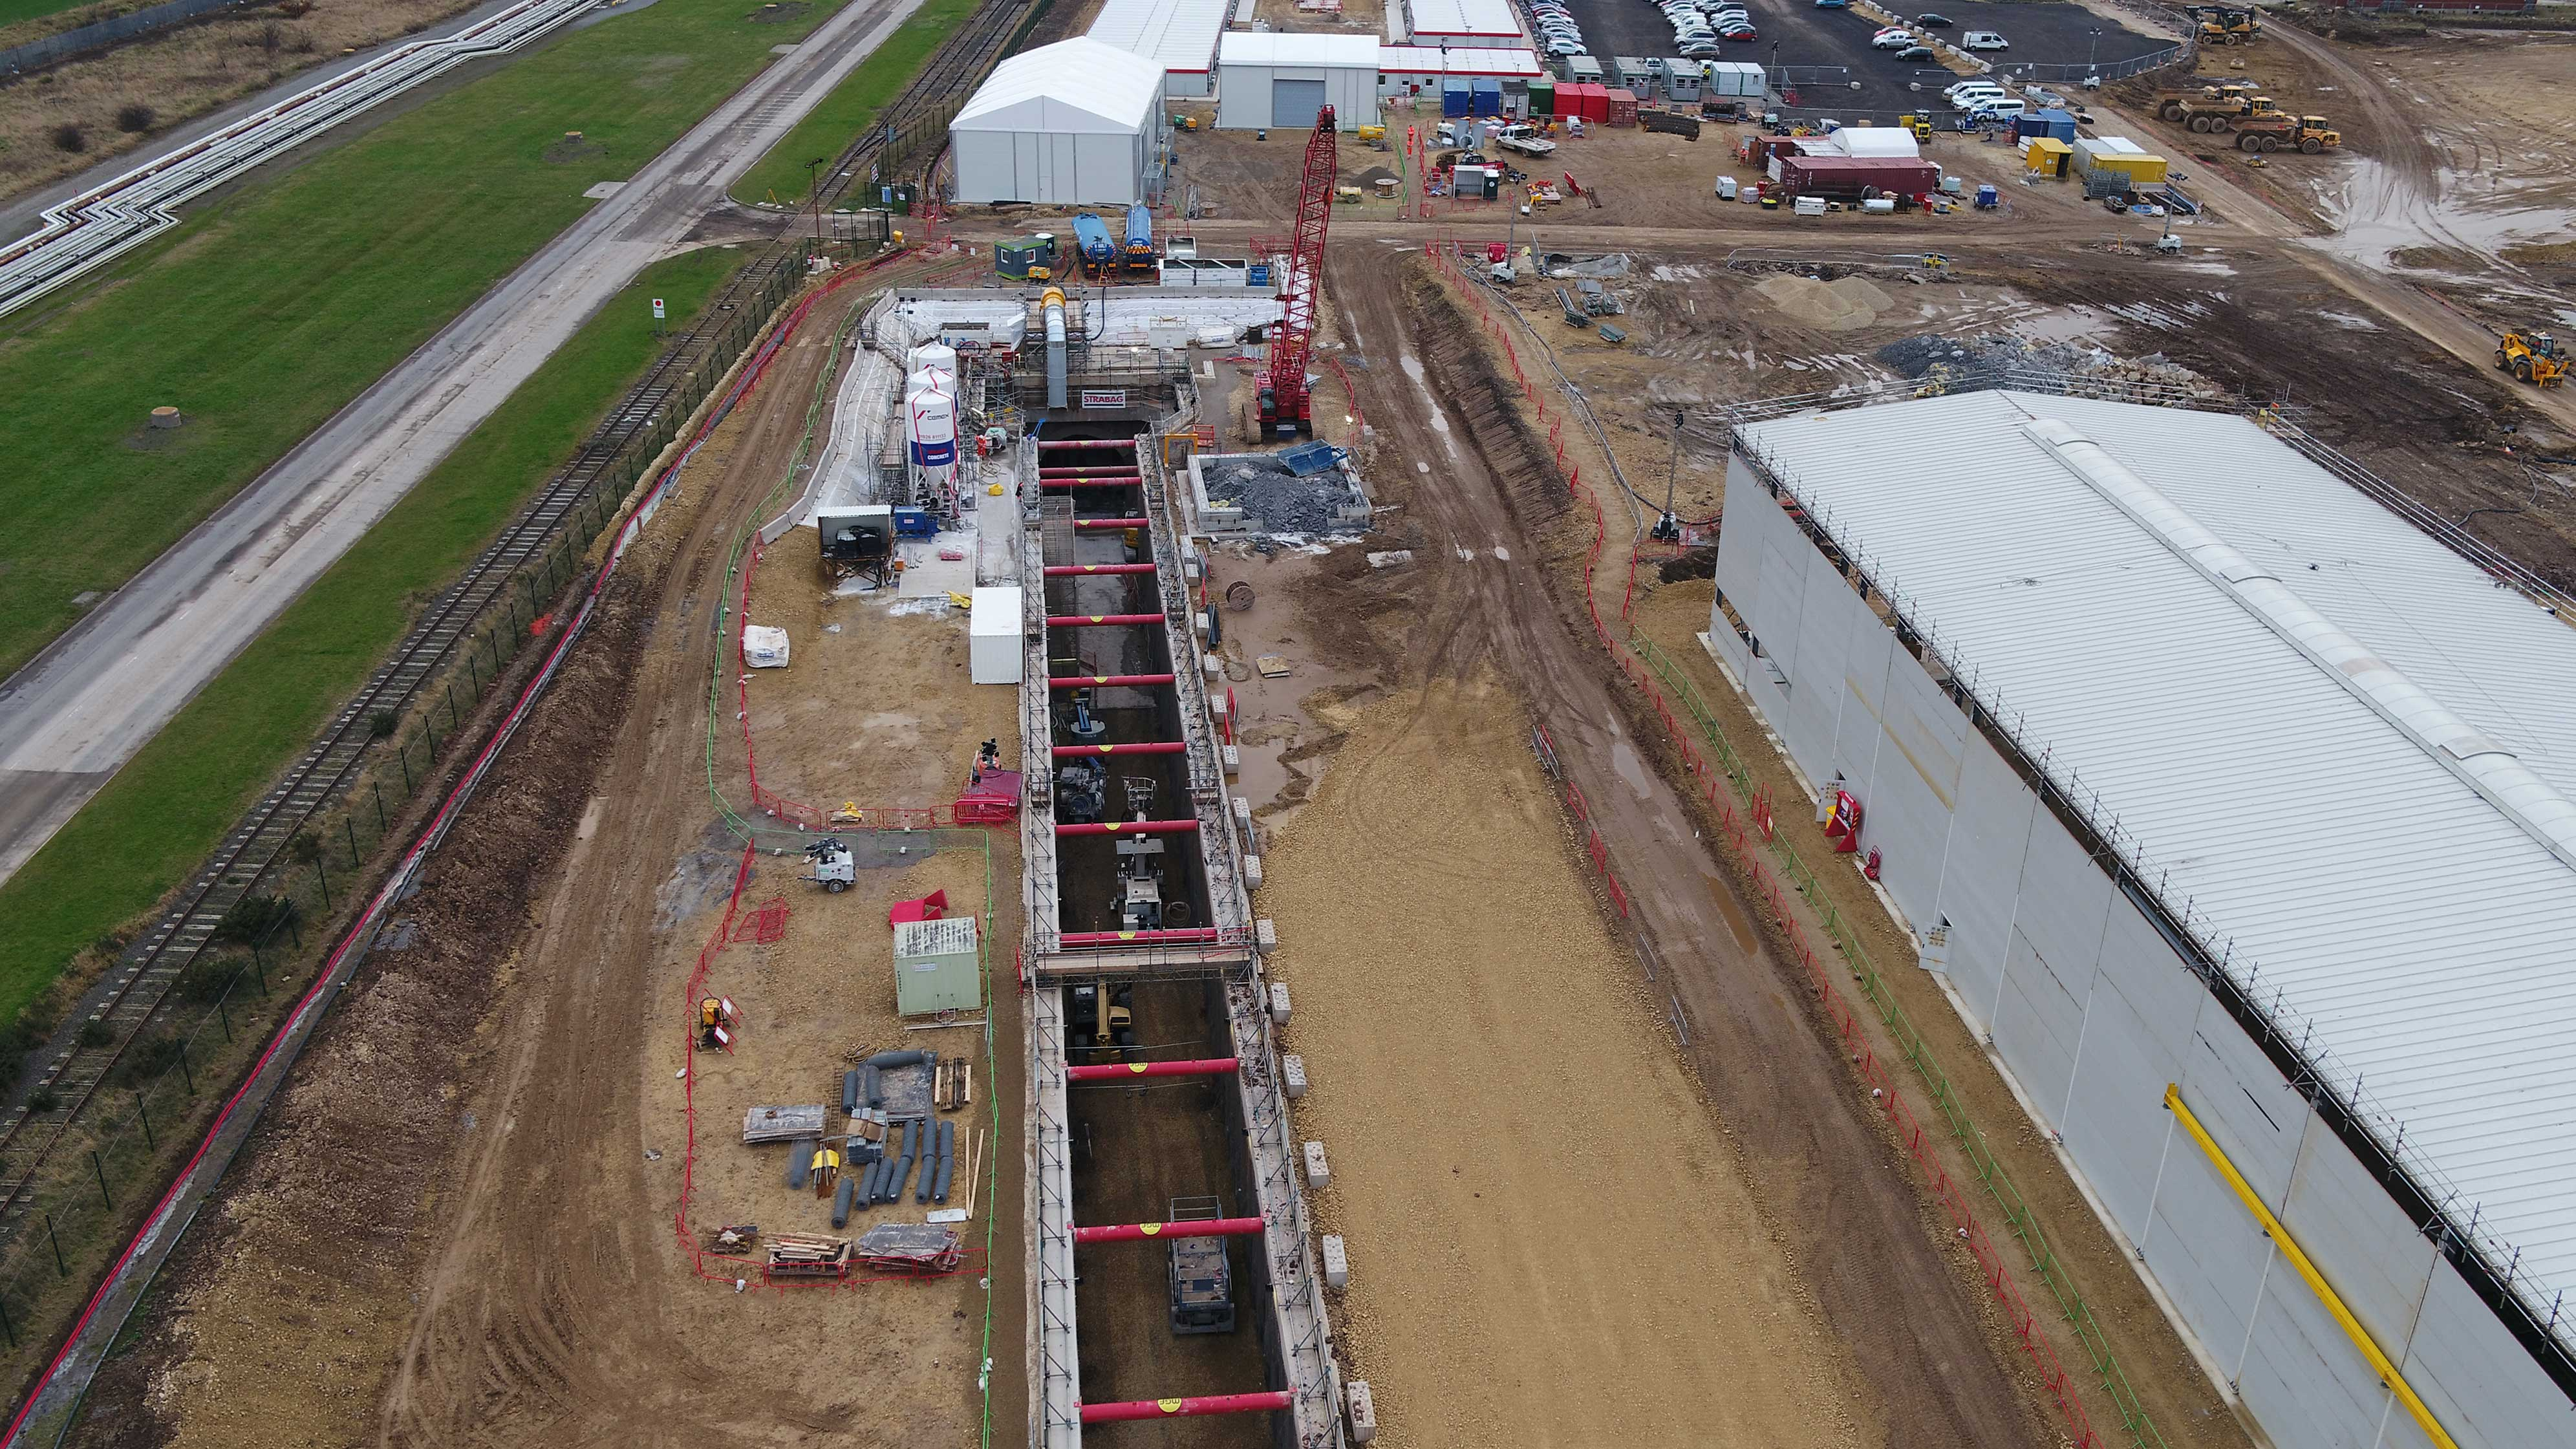 Aerial photo of large excavation in the shape of a tunnel